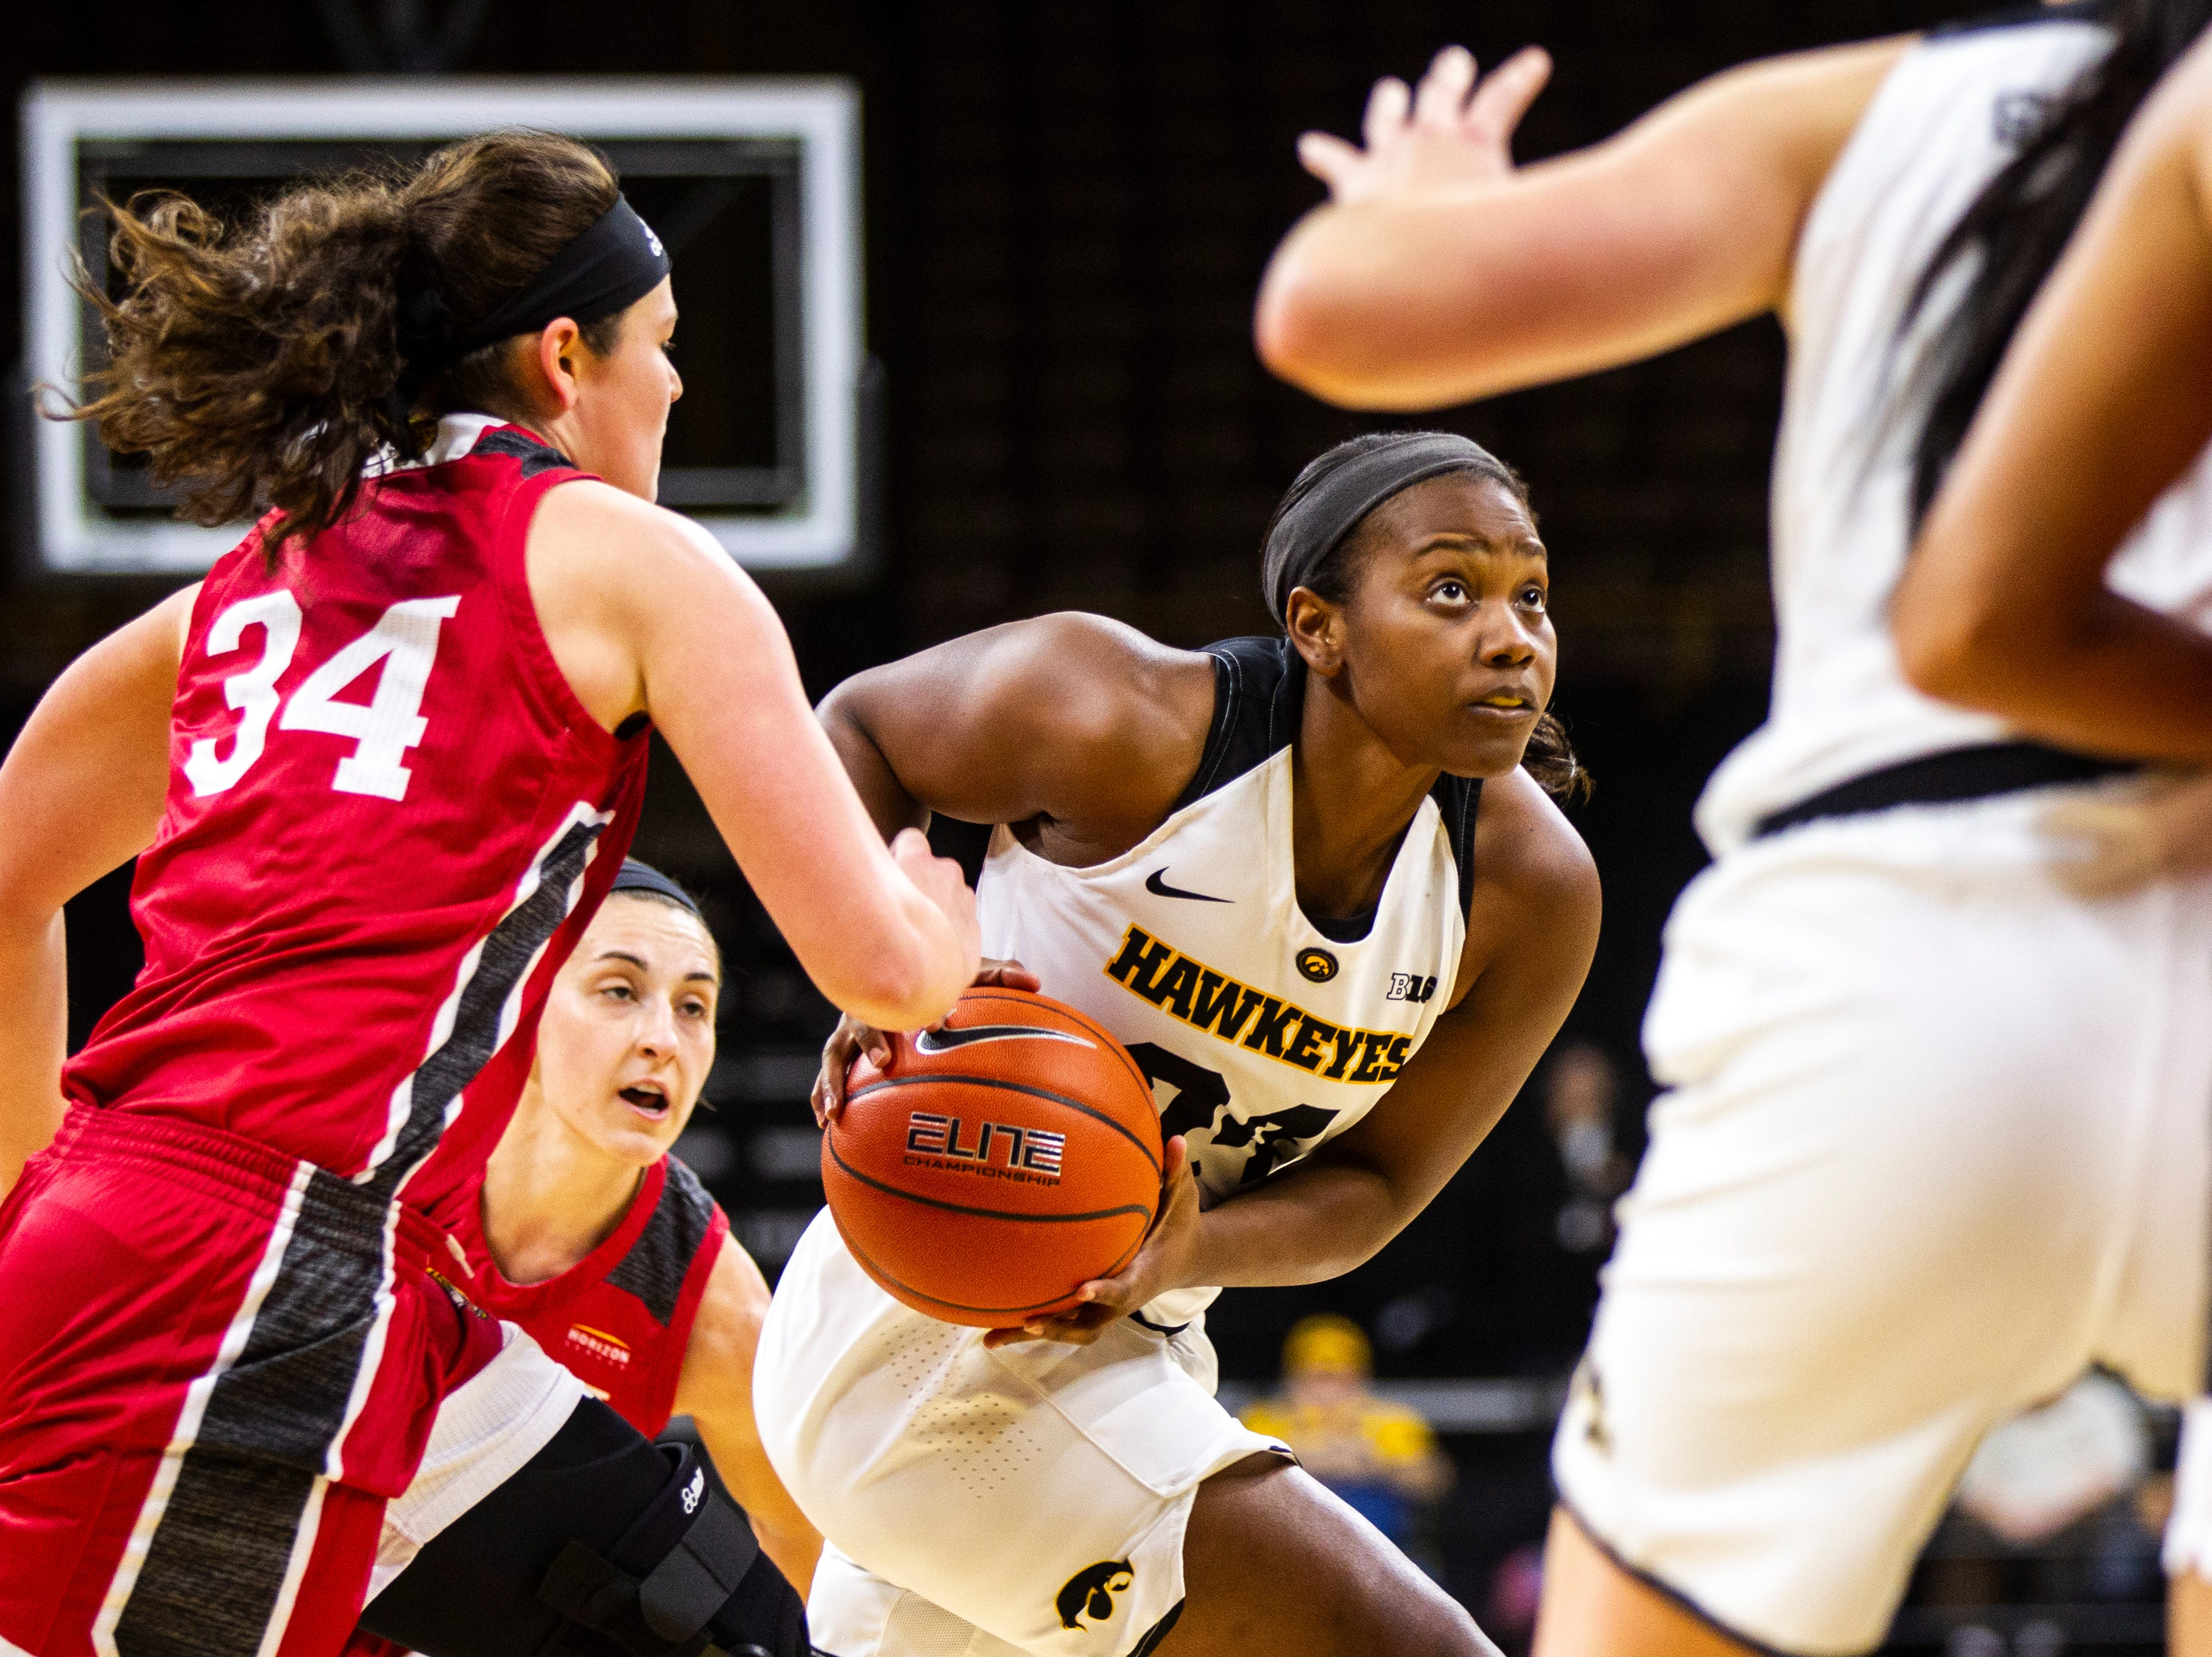 Iowa guard Zion Sanders (24) drives to the hoop past IUPUI's Katelyn O'Reilly (34) during a NCAA women's basketball game on Saturday, Dec. 8, 2018, at Carver-Hawkeye Arena in Iowa City.